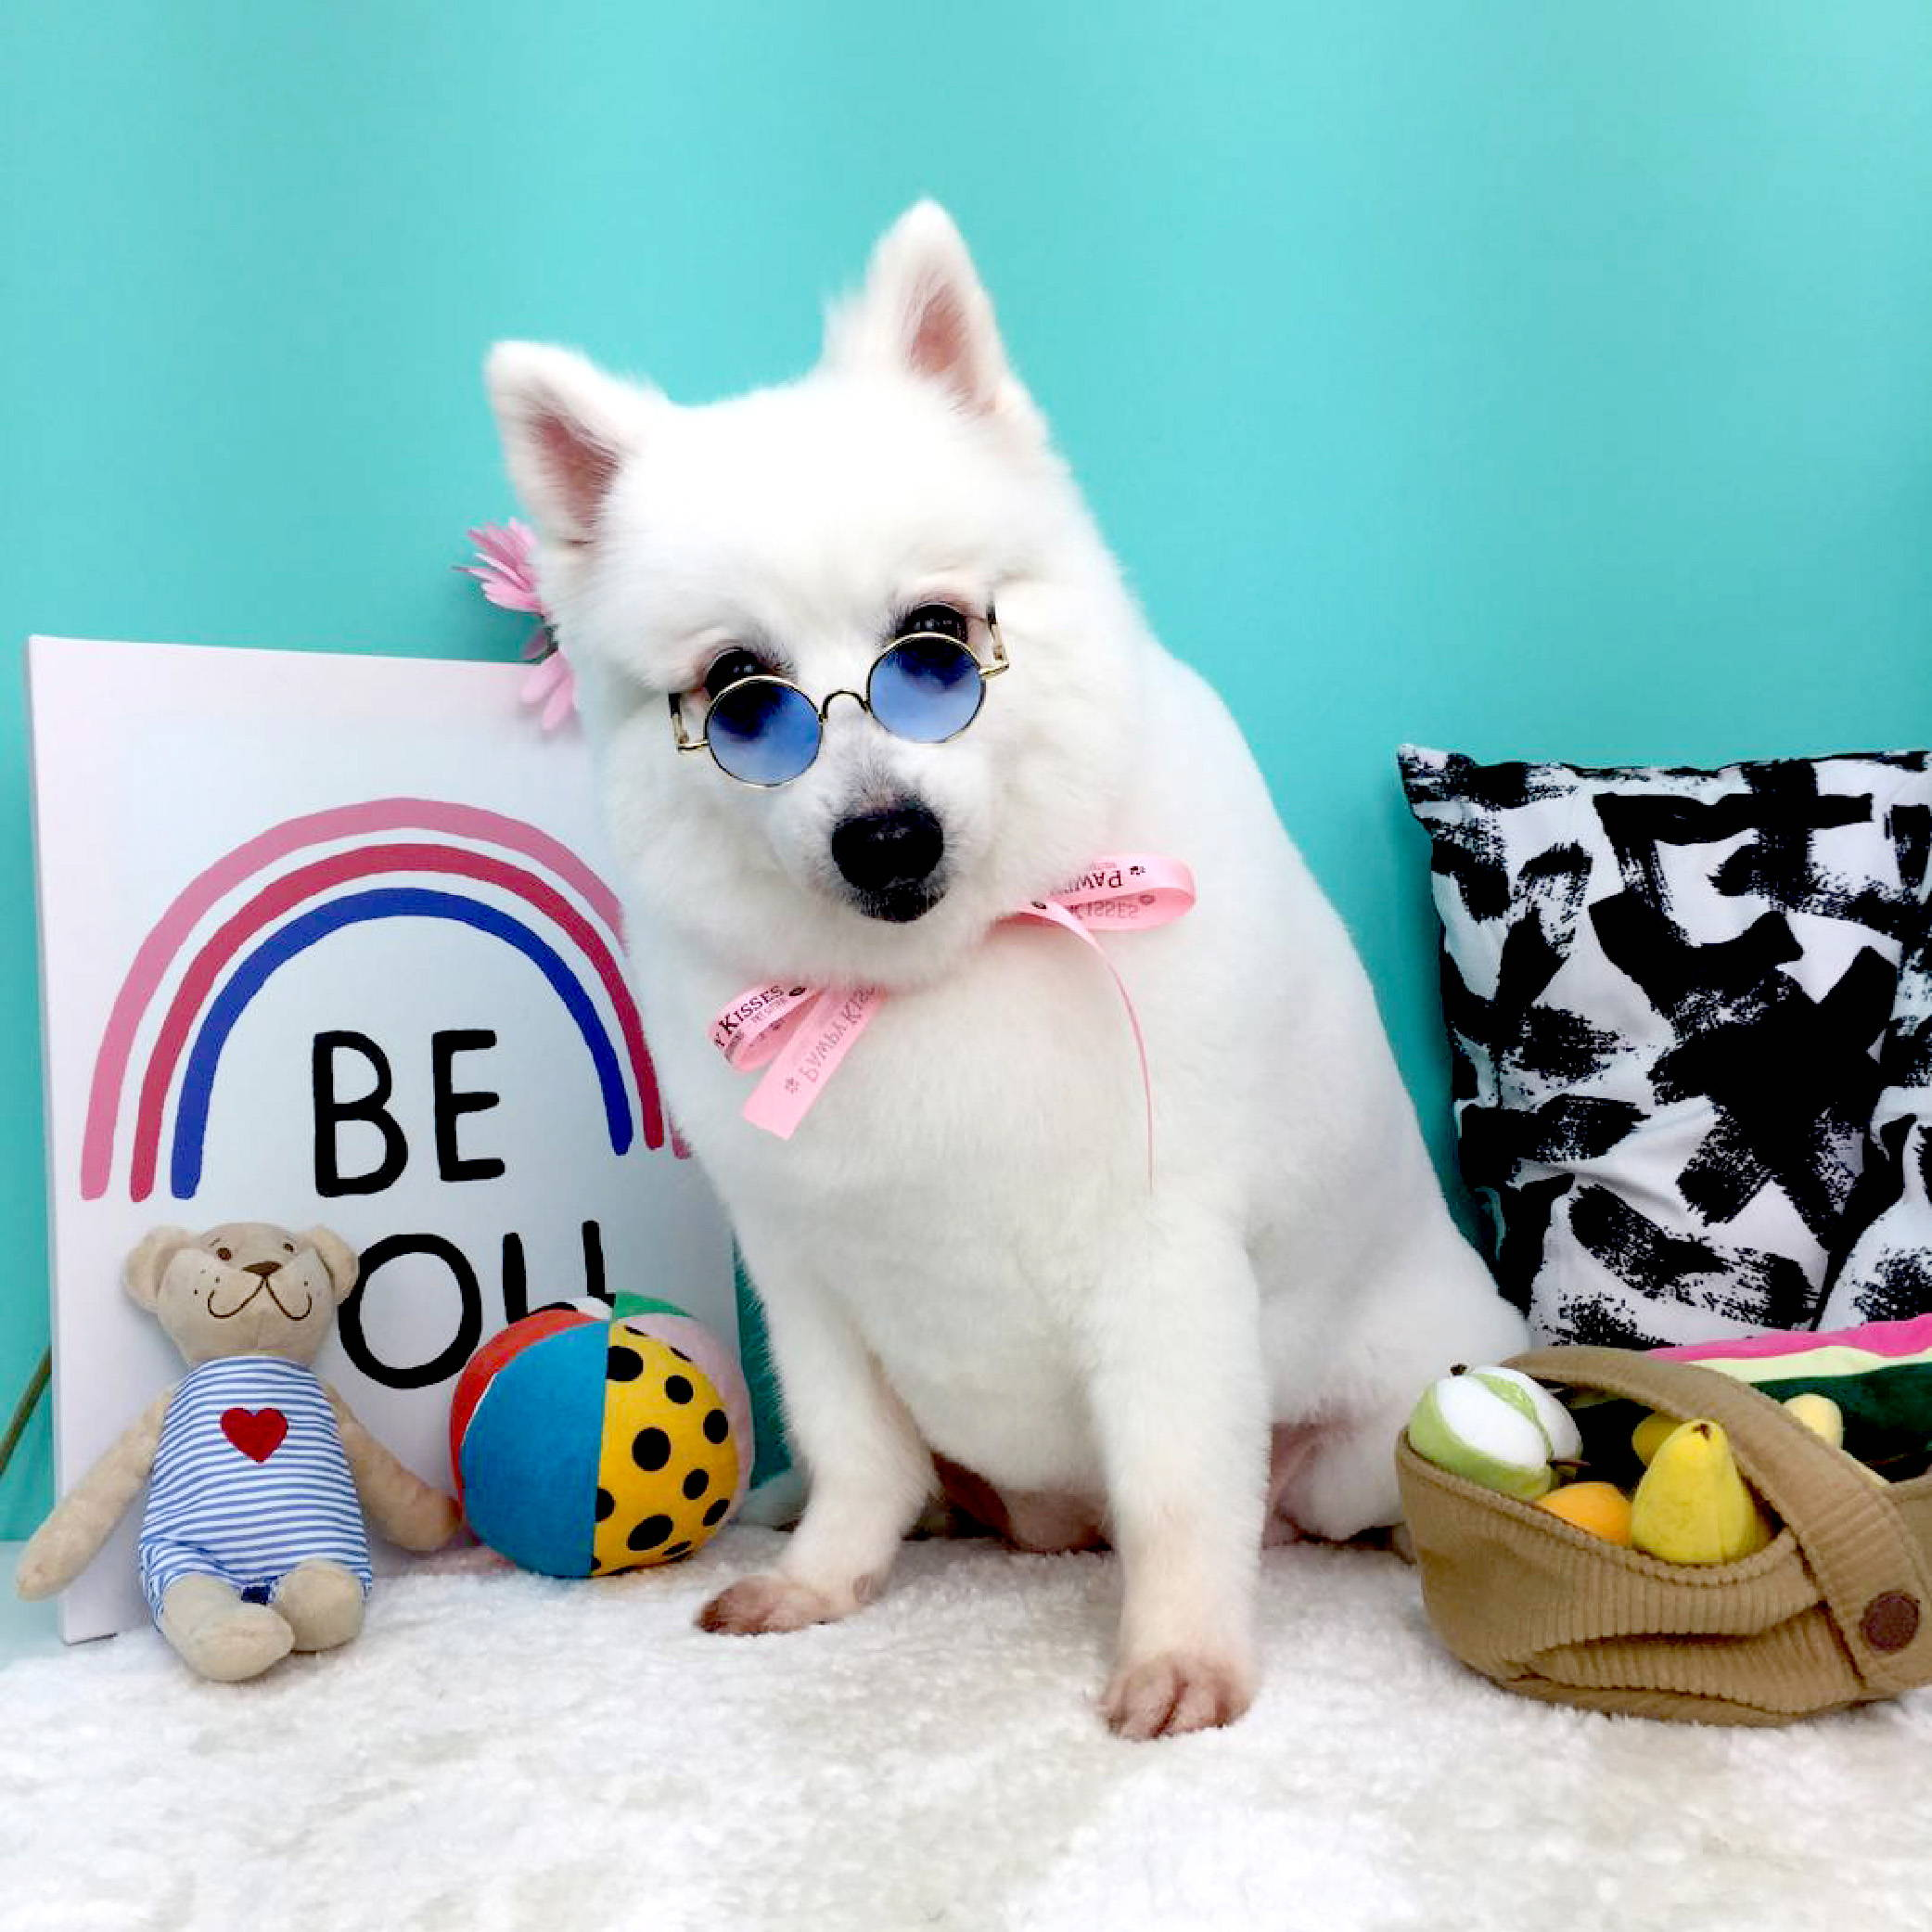 Pawpykisses pet grooming singapore 7